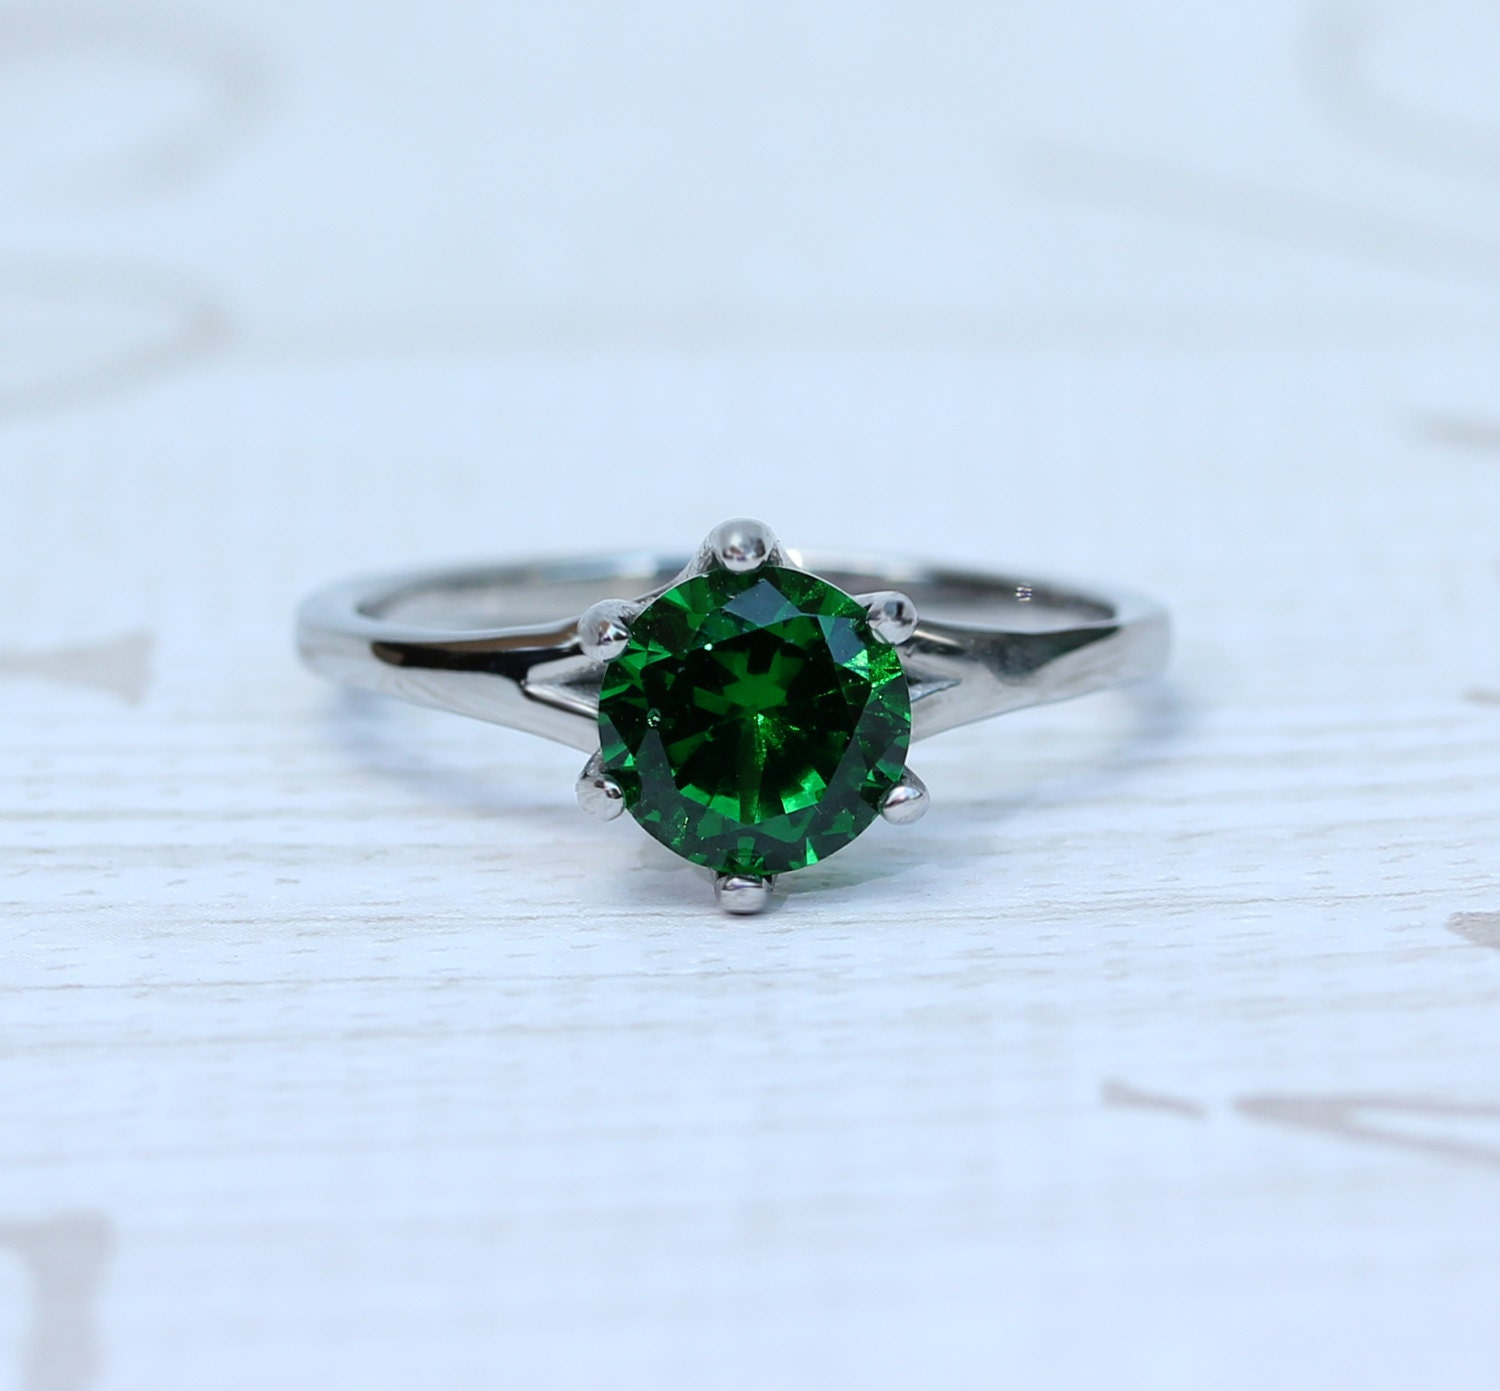 1.5ct Lab emerald solitaire ring in Titanium or White Gold  engagement ring  wedding ring  handmade ring